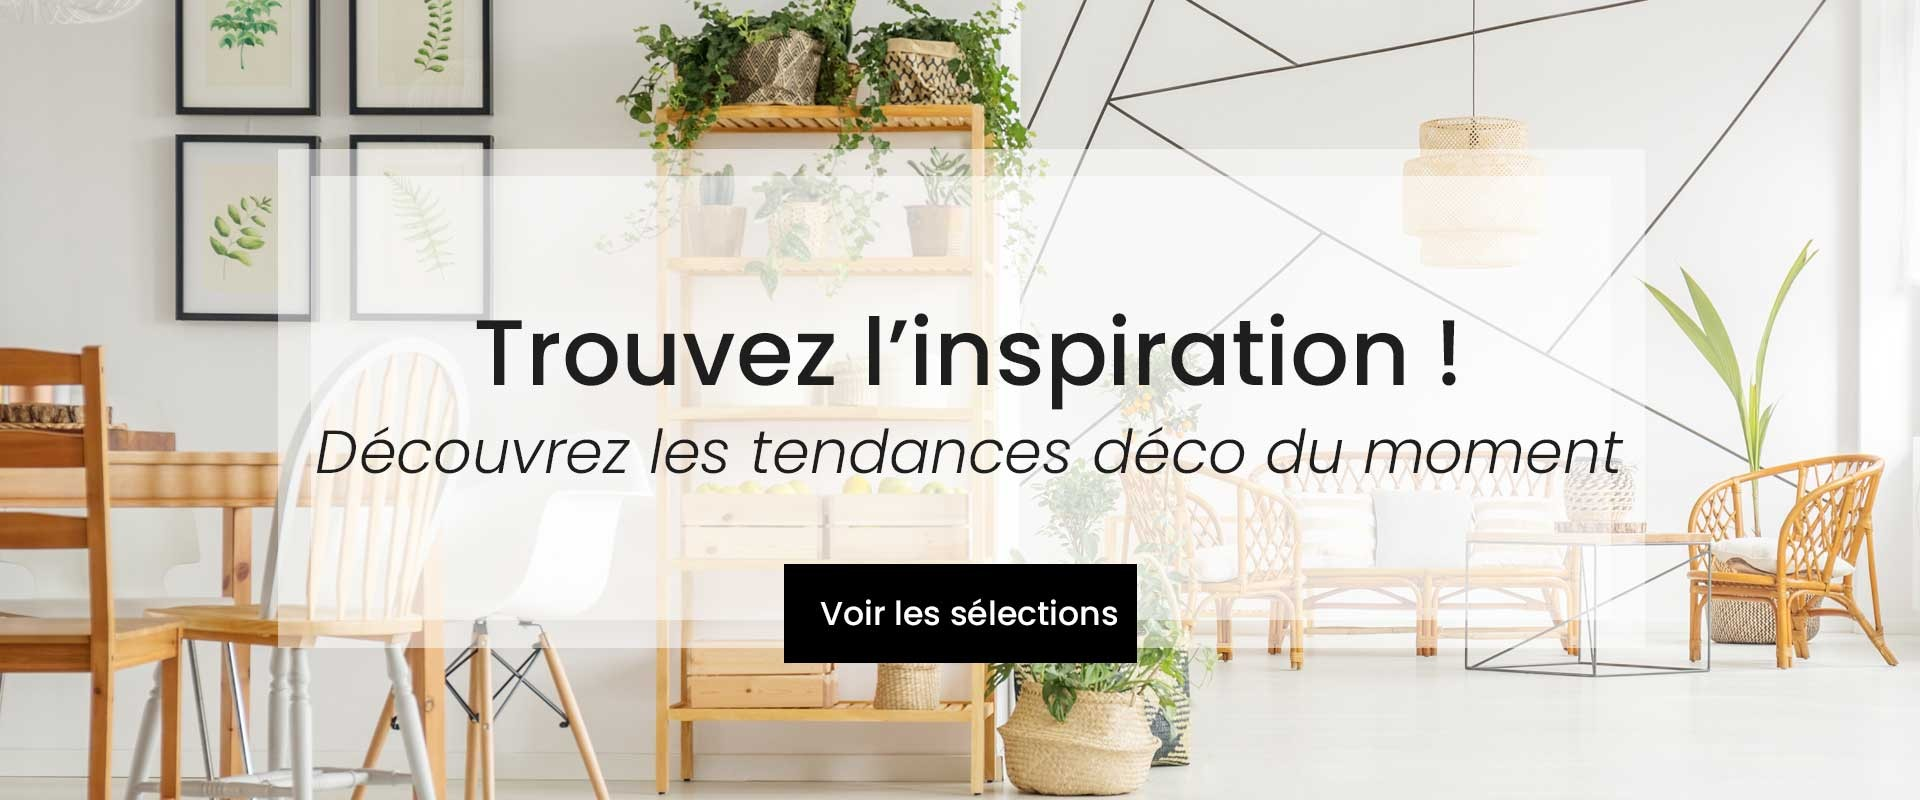 selections-inspiration